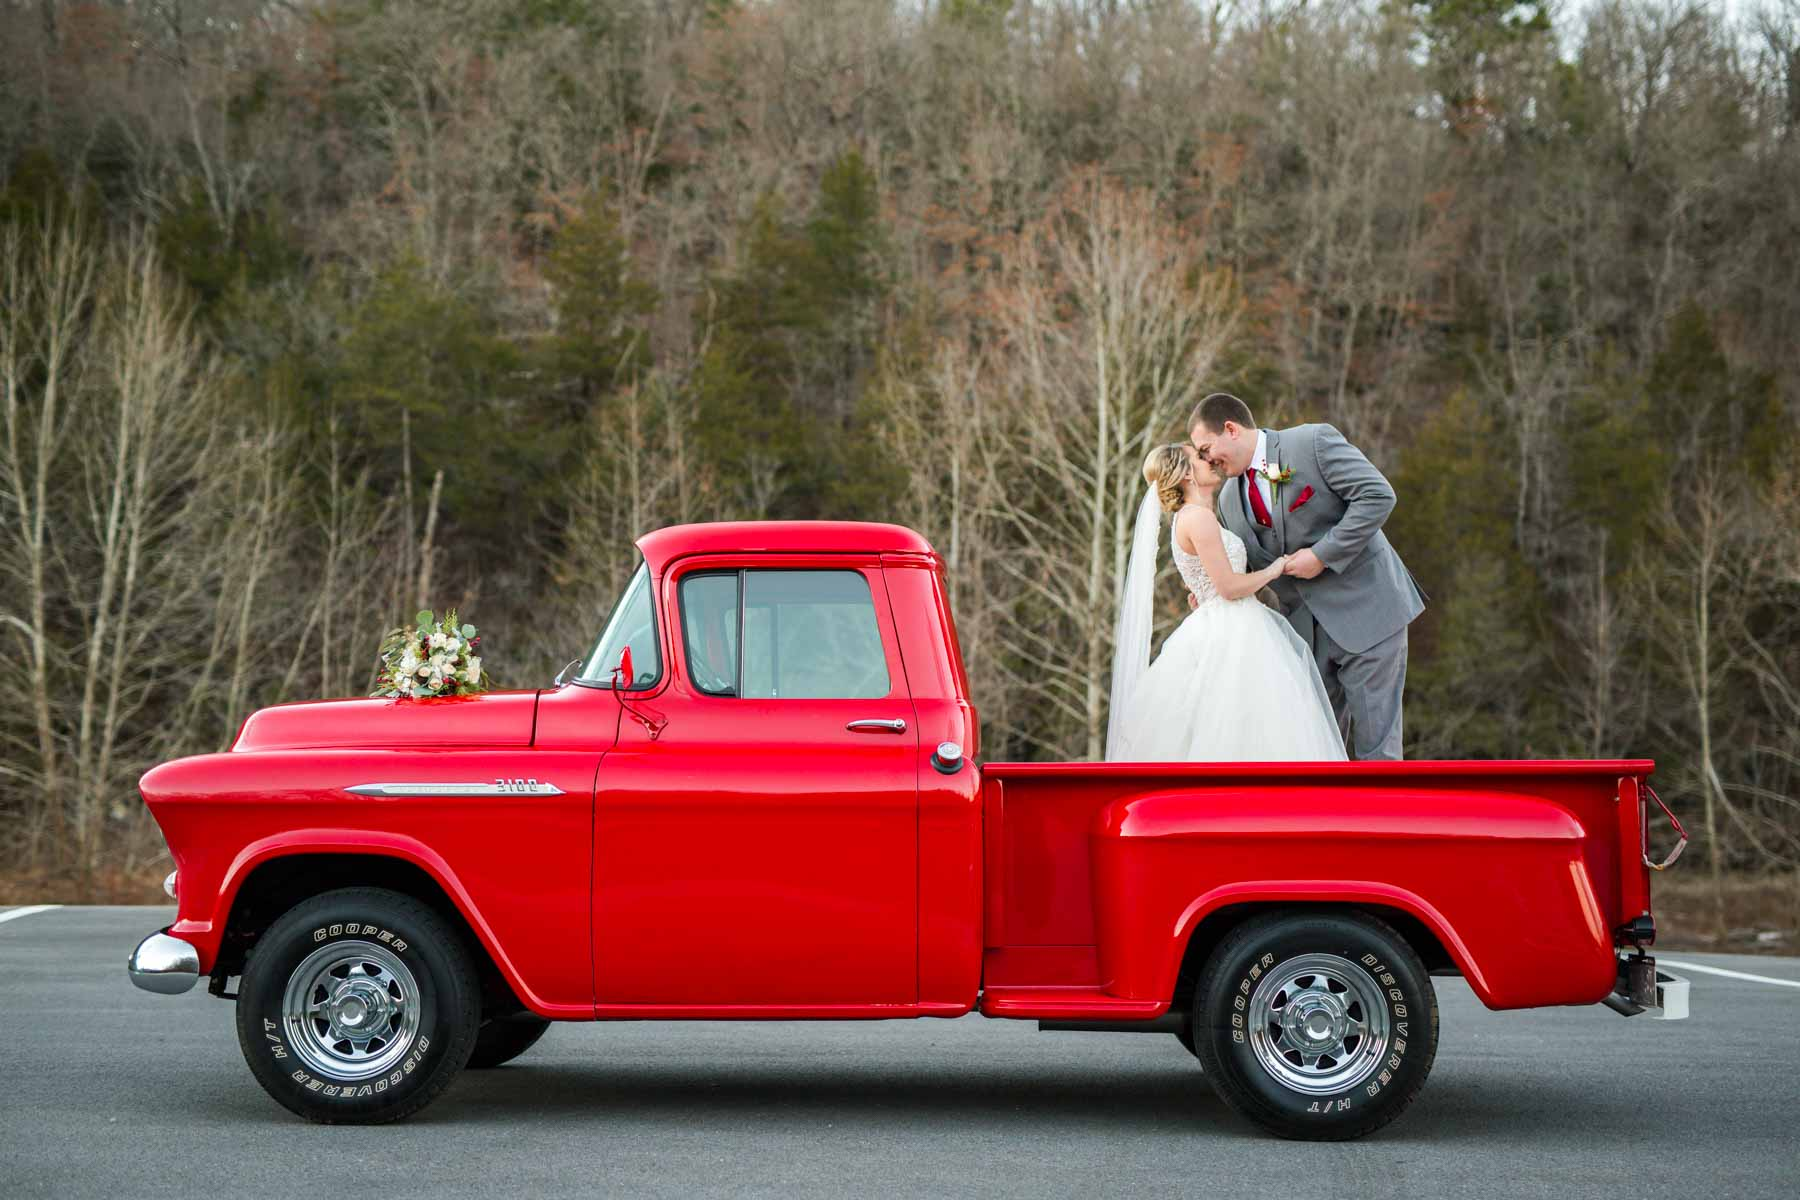 Bride and Groom in 57 chevy-1.jpg